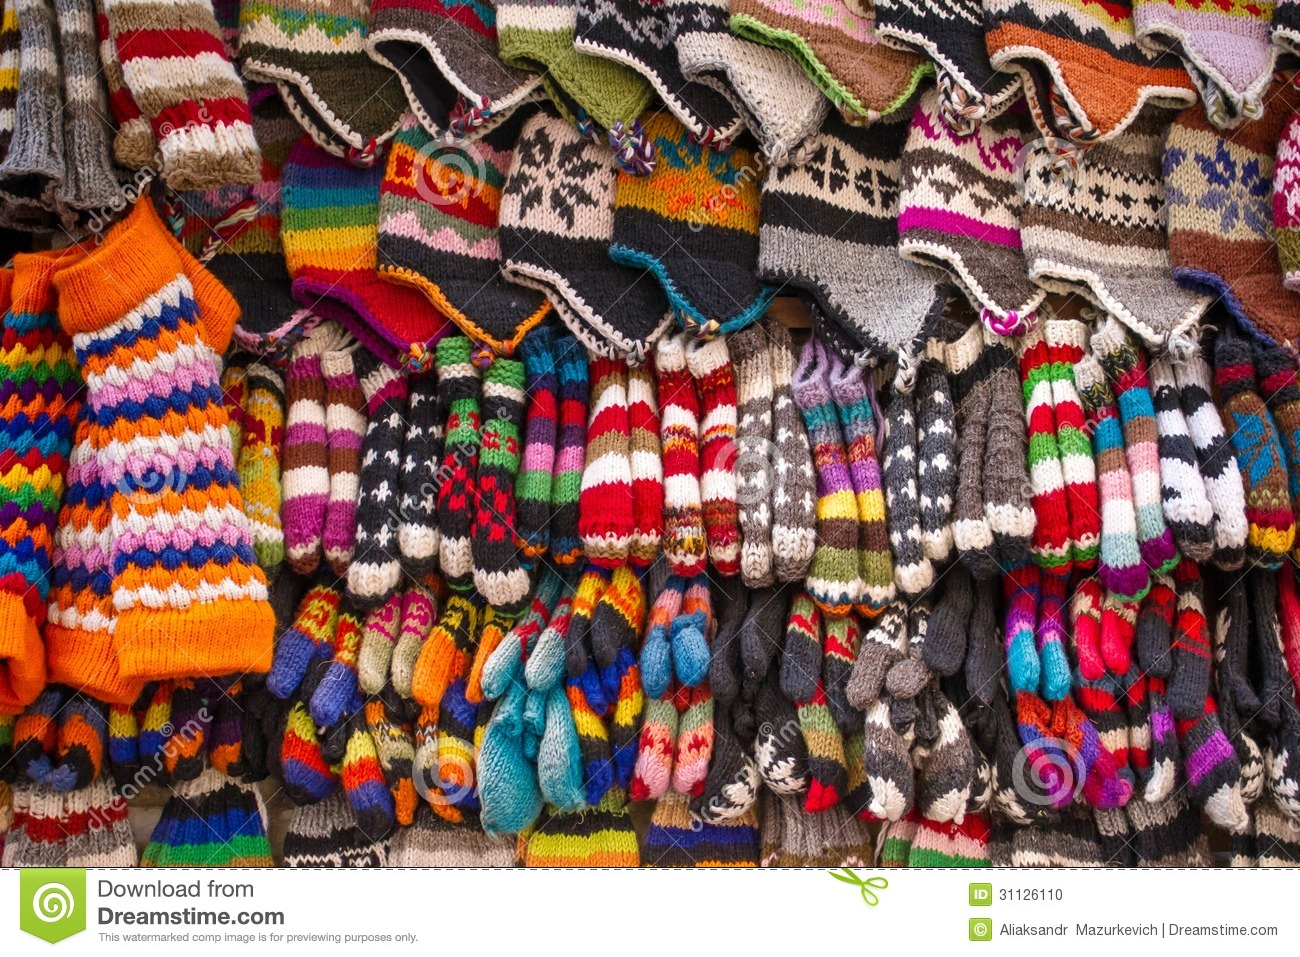 Rainbow Knitting Design Colorful Woolen Socks Hats And Gloves Stock Photo Image